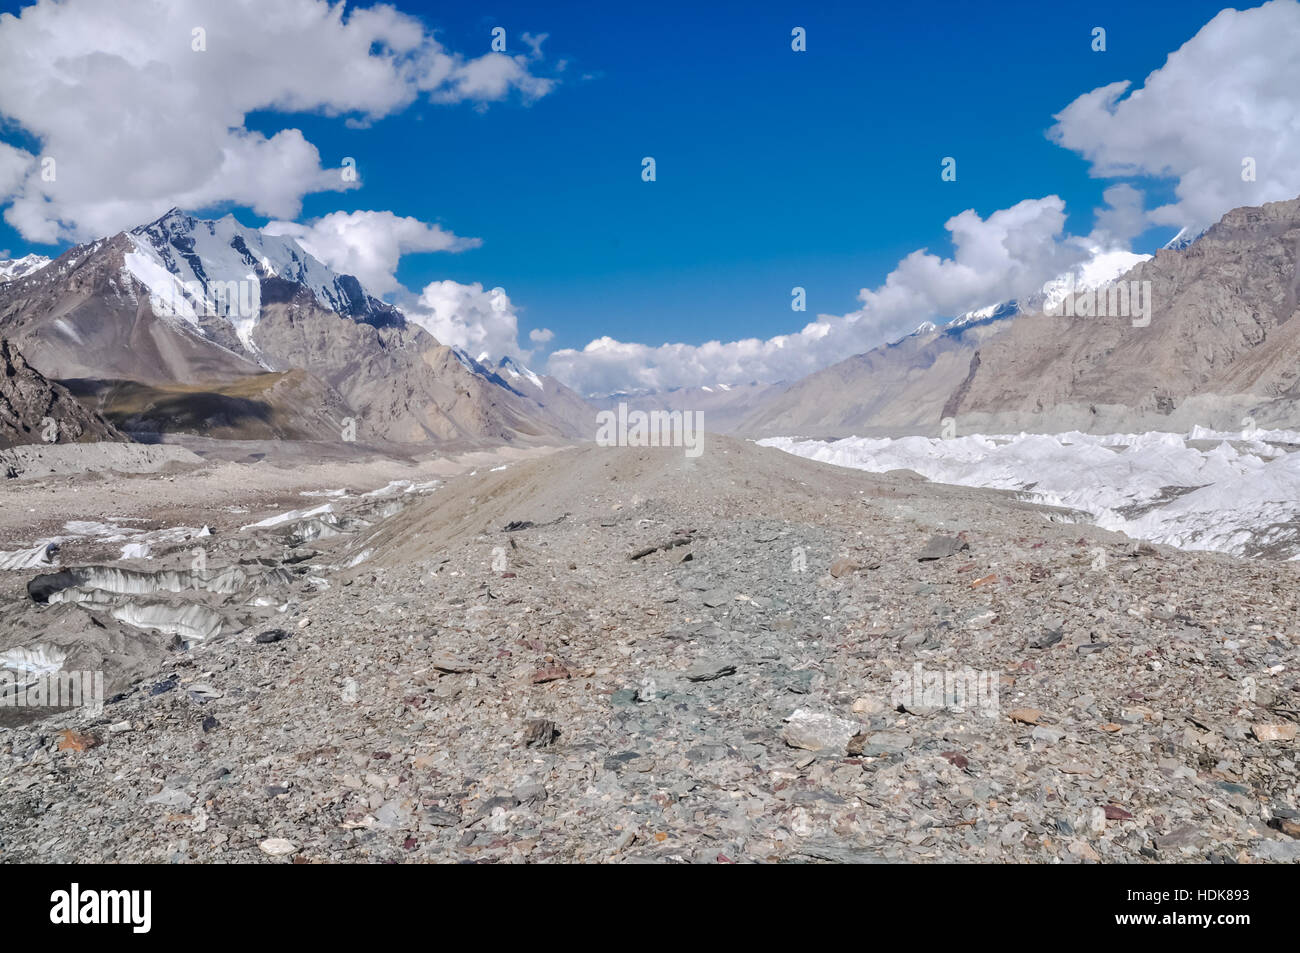 Photo of rocks and mountains with snowy tops near South Inylcheck Glaciar in Kyrgystan. - Stock Image